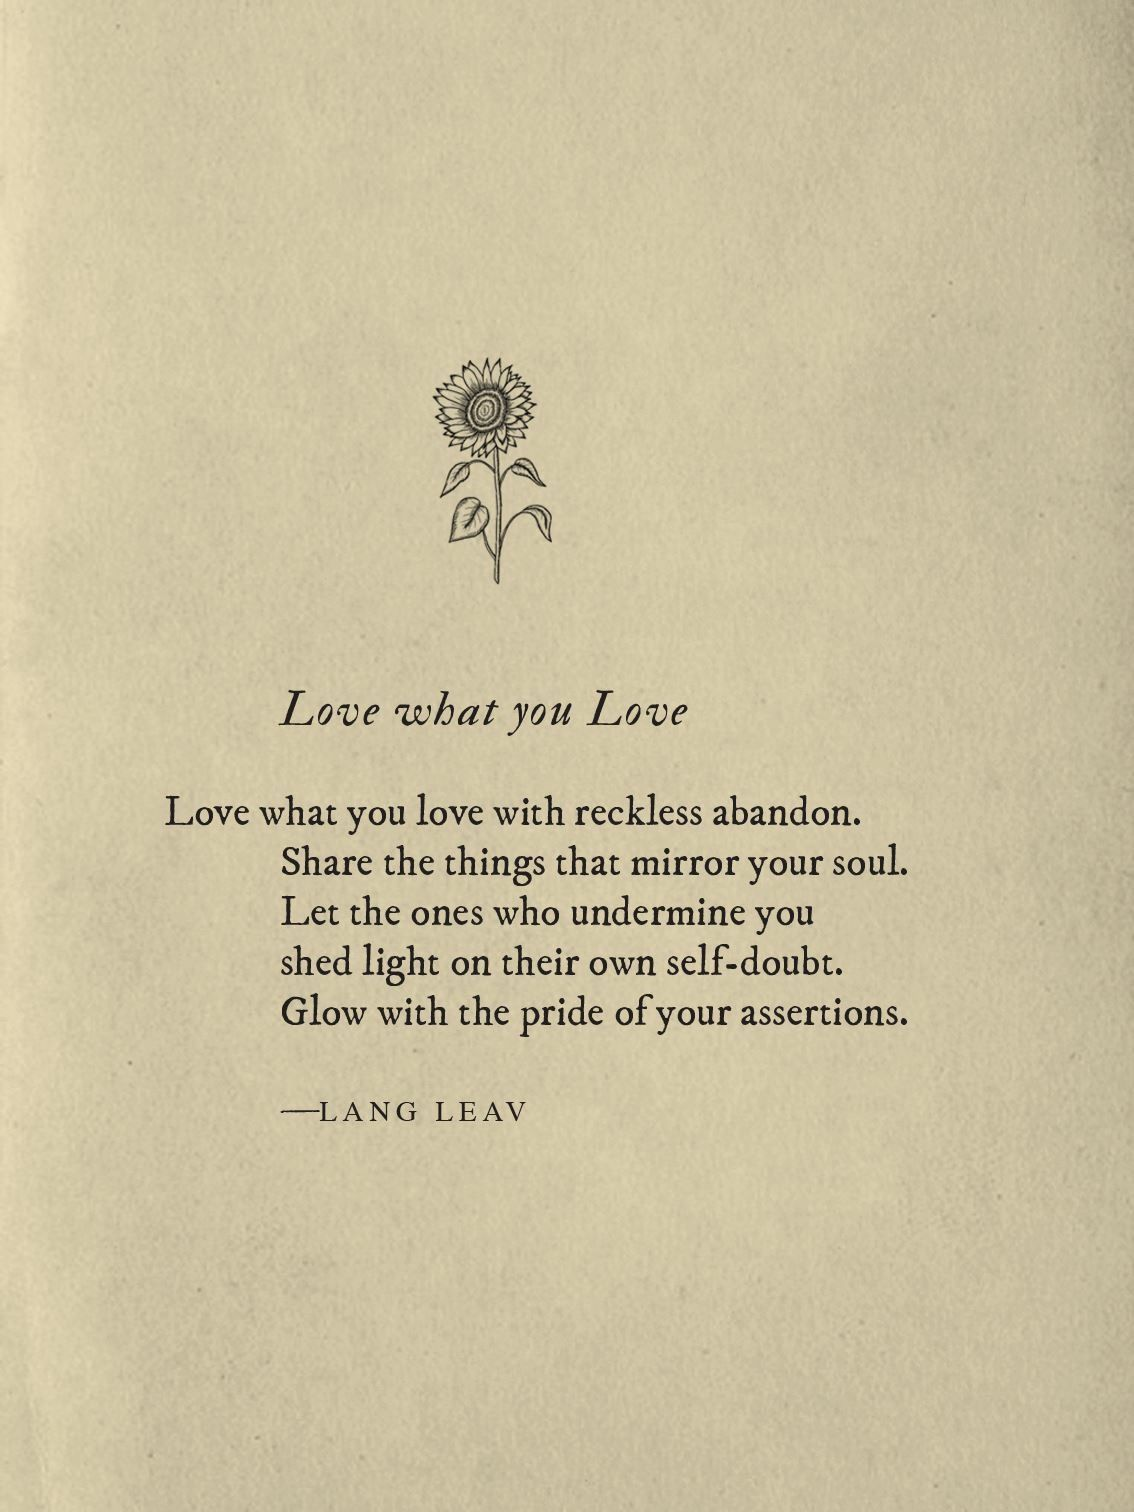 Love What You Love~Lang Leav (With images)   Love words ... Lang Leav Quotes On Friendship And Love